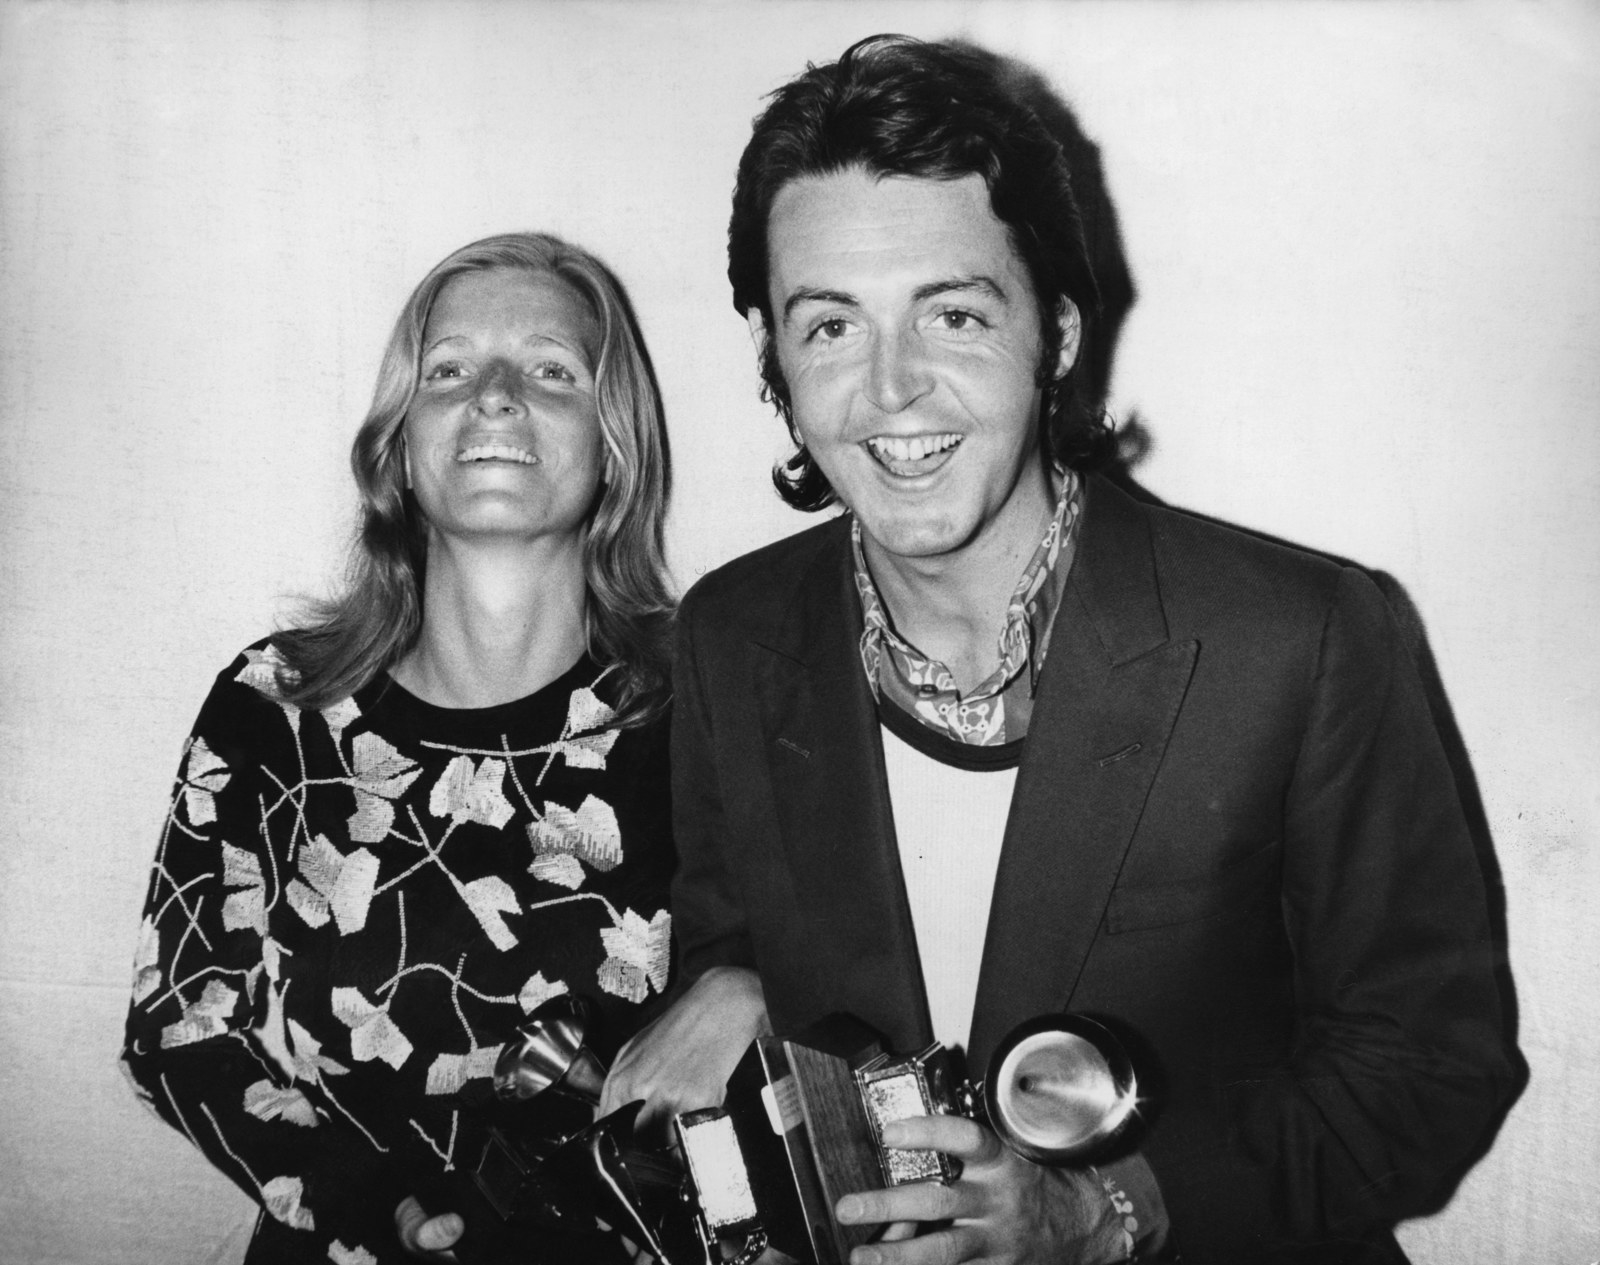 First of all, this pic is from the 13th Grammy Awards in 1971. Couldn't find a pic from the actual event cause ya know, oldness and stuff. Second of all, Petula Clark, Astrud Gilberto, Antonio Carlos Jobim and Morgana King were the competition who did not win.